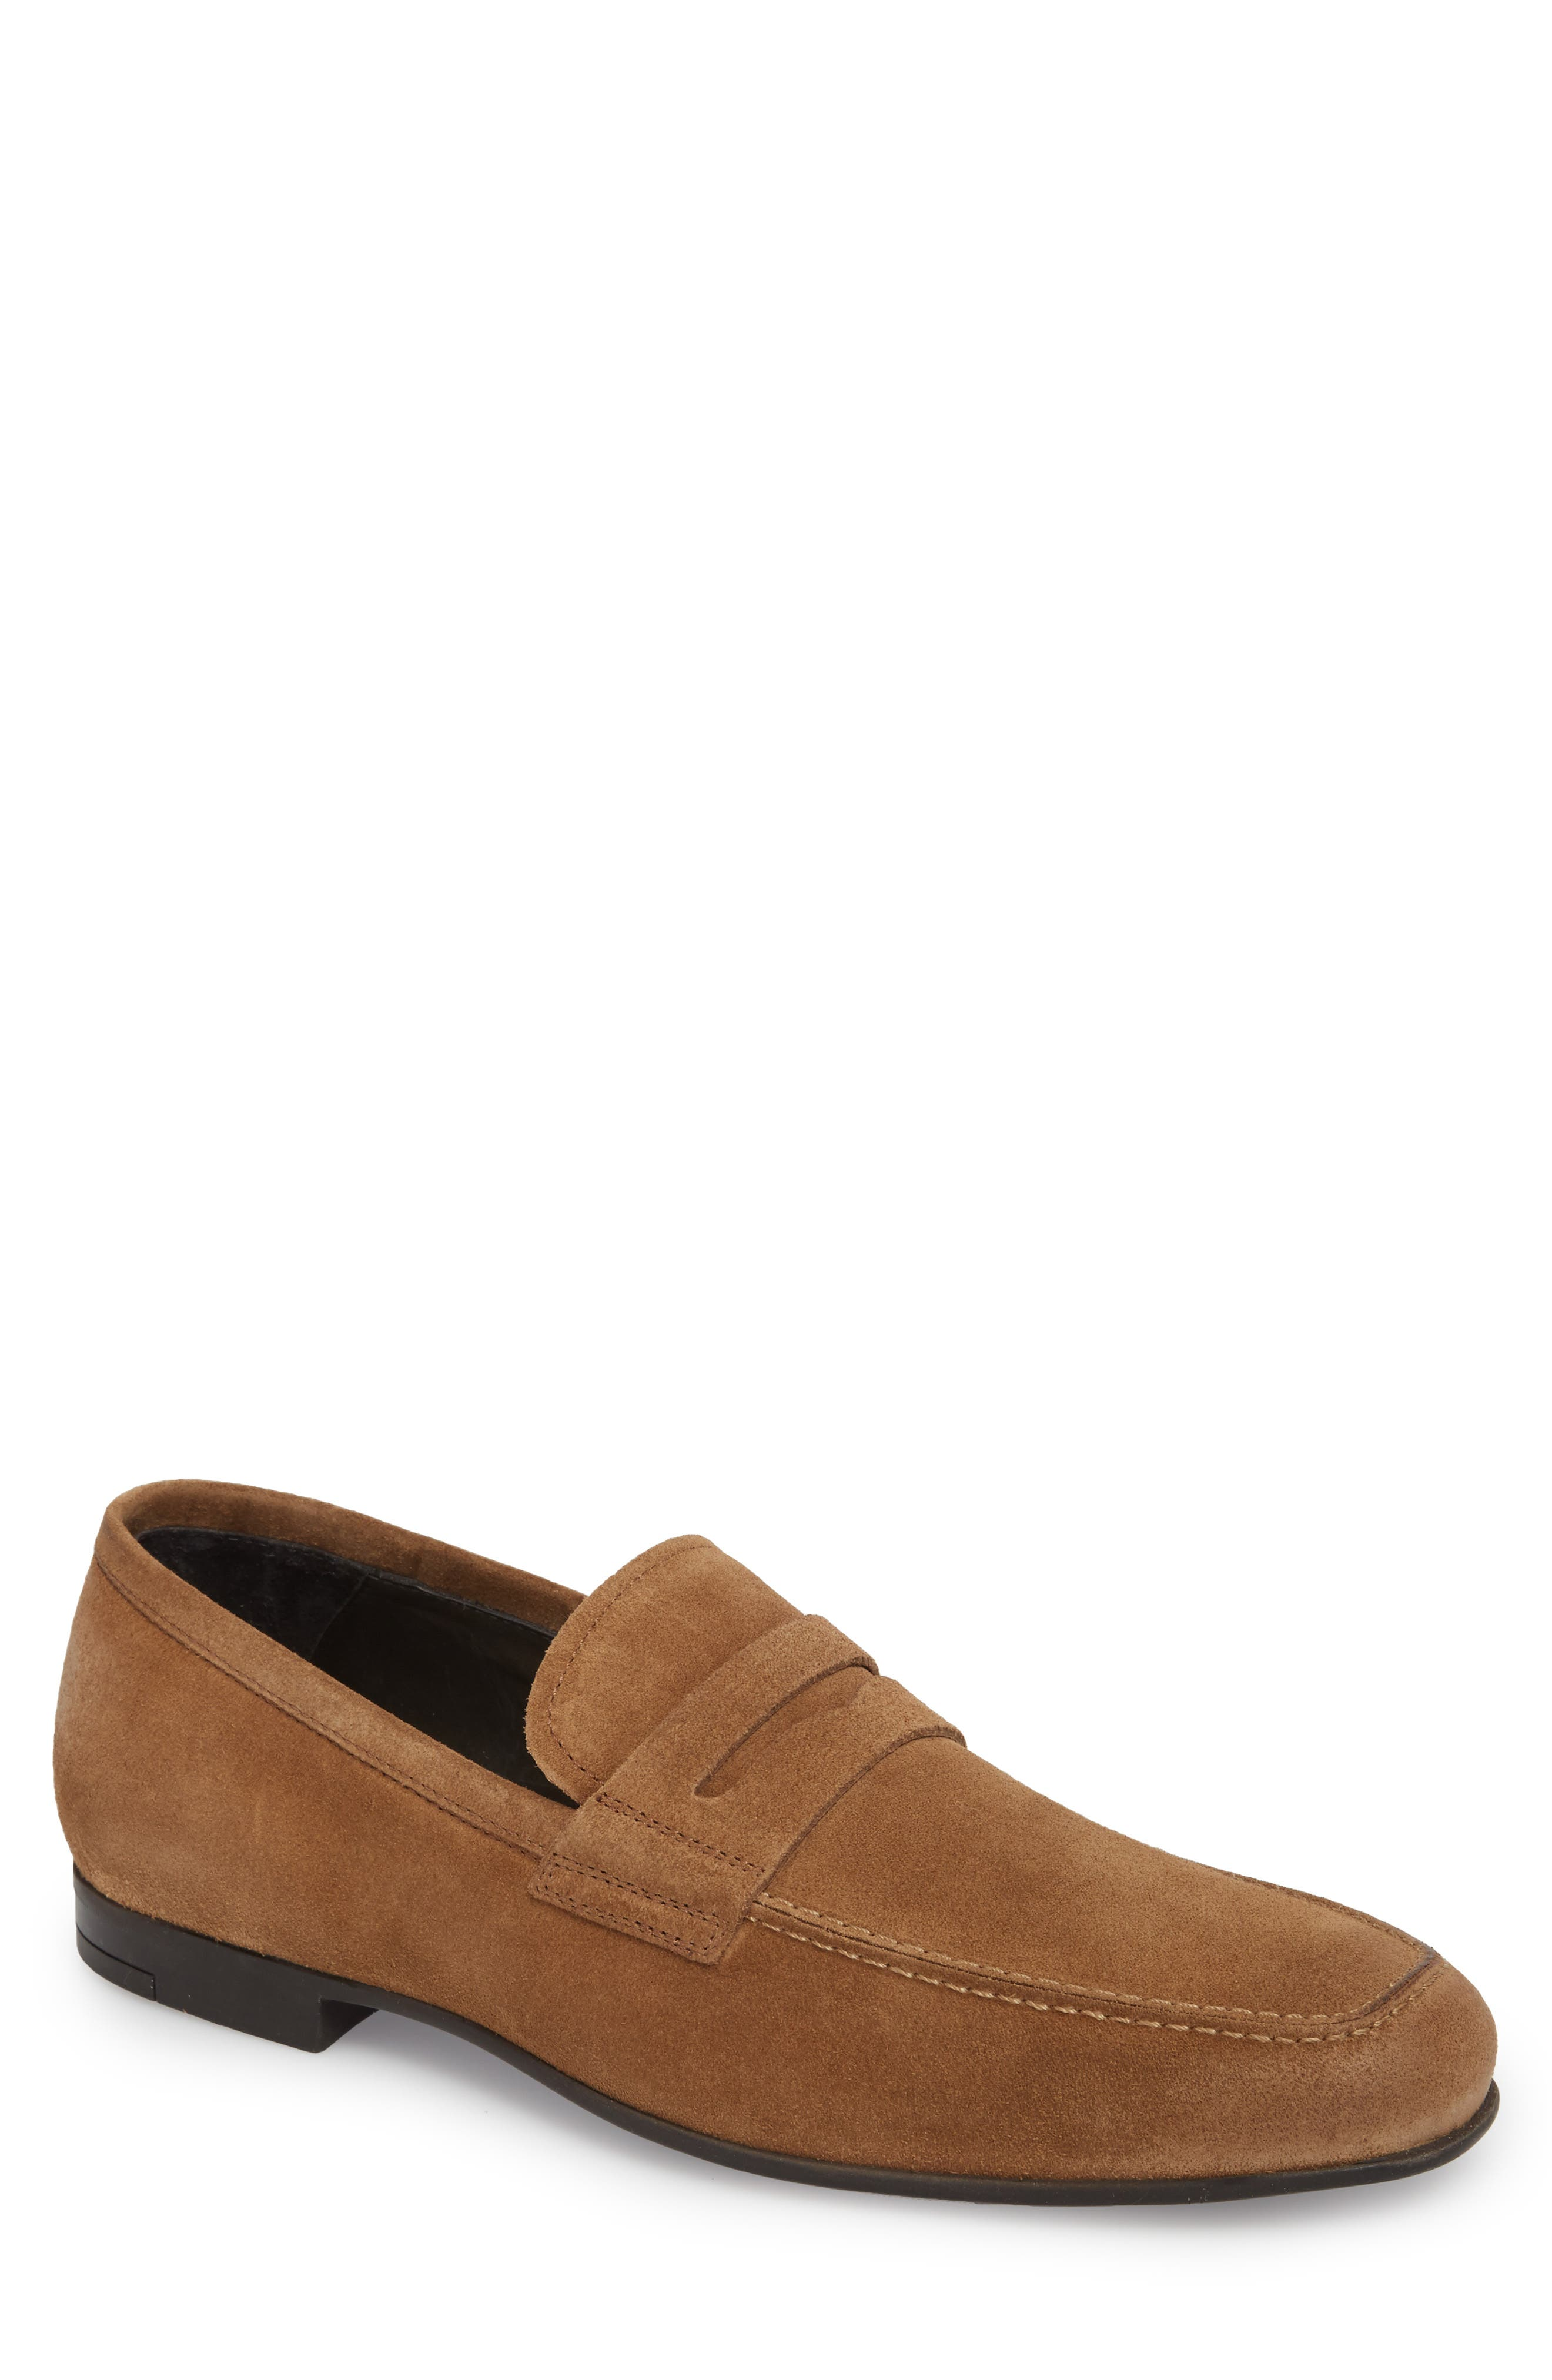 Alek Penny Loafer,                             Main thumbnail 1, color,                             Sigaro Suede